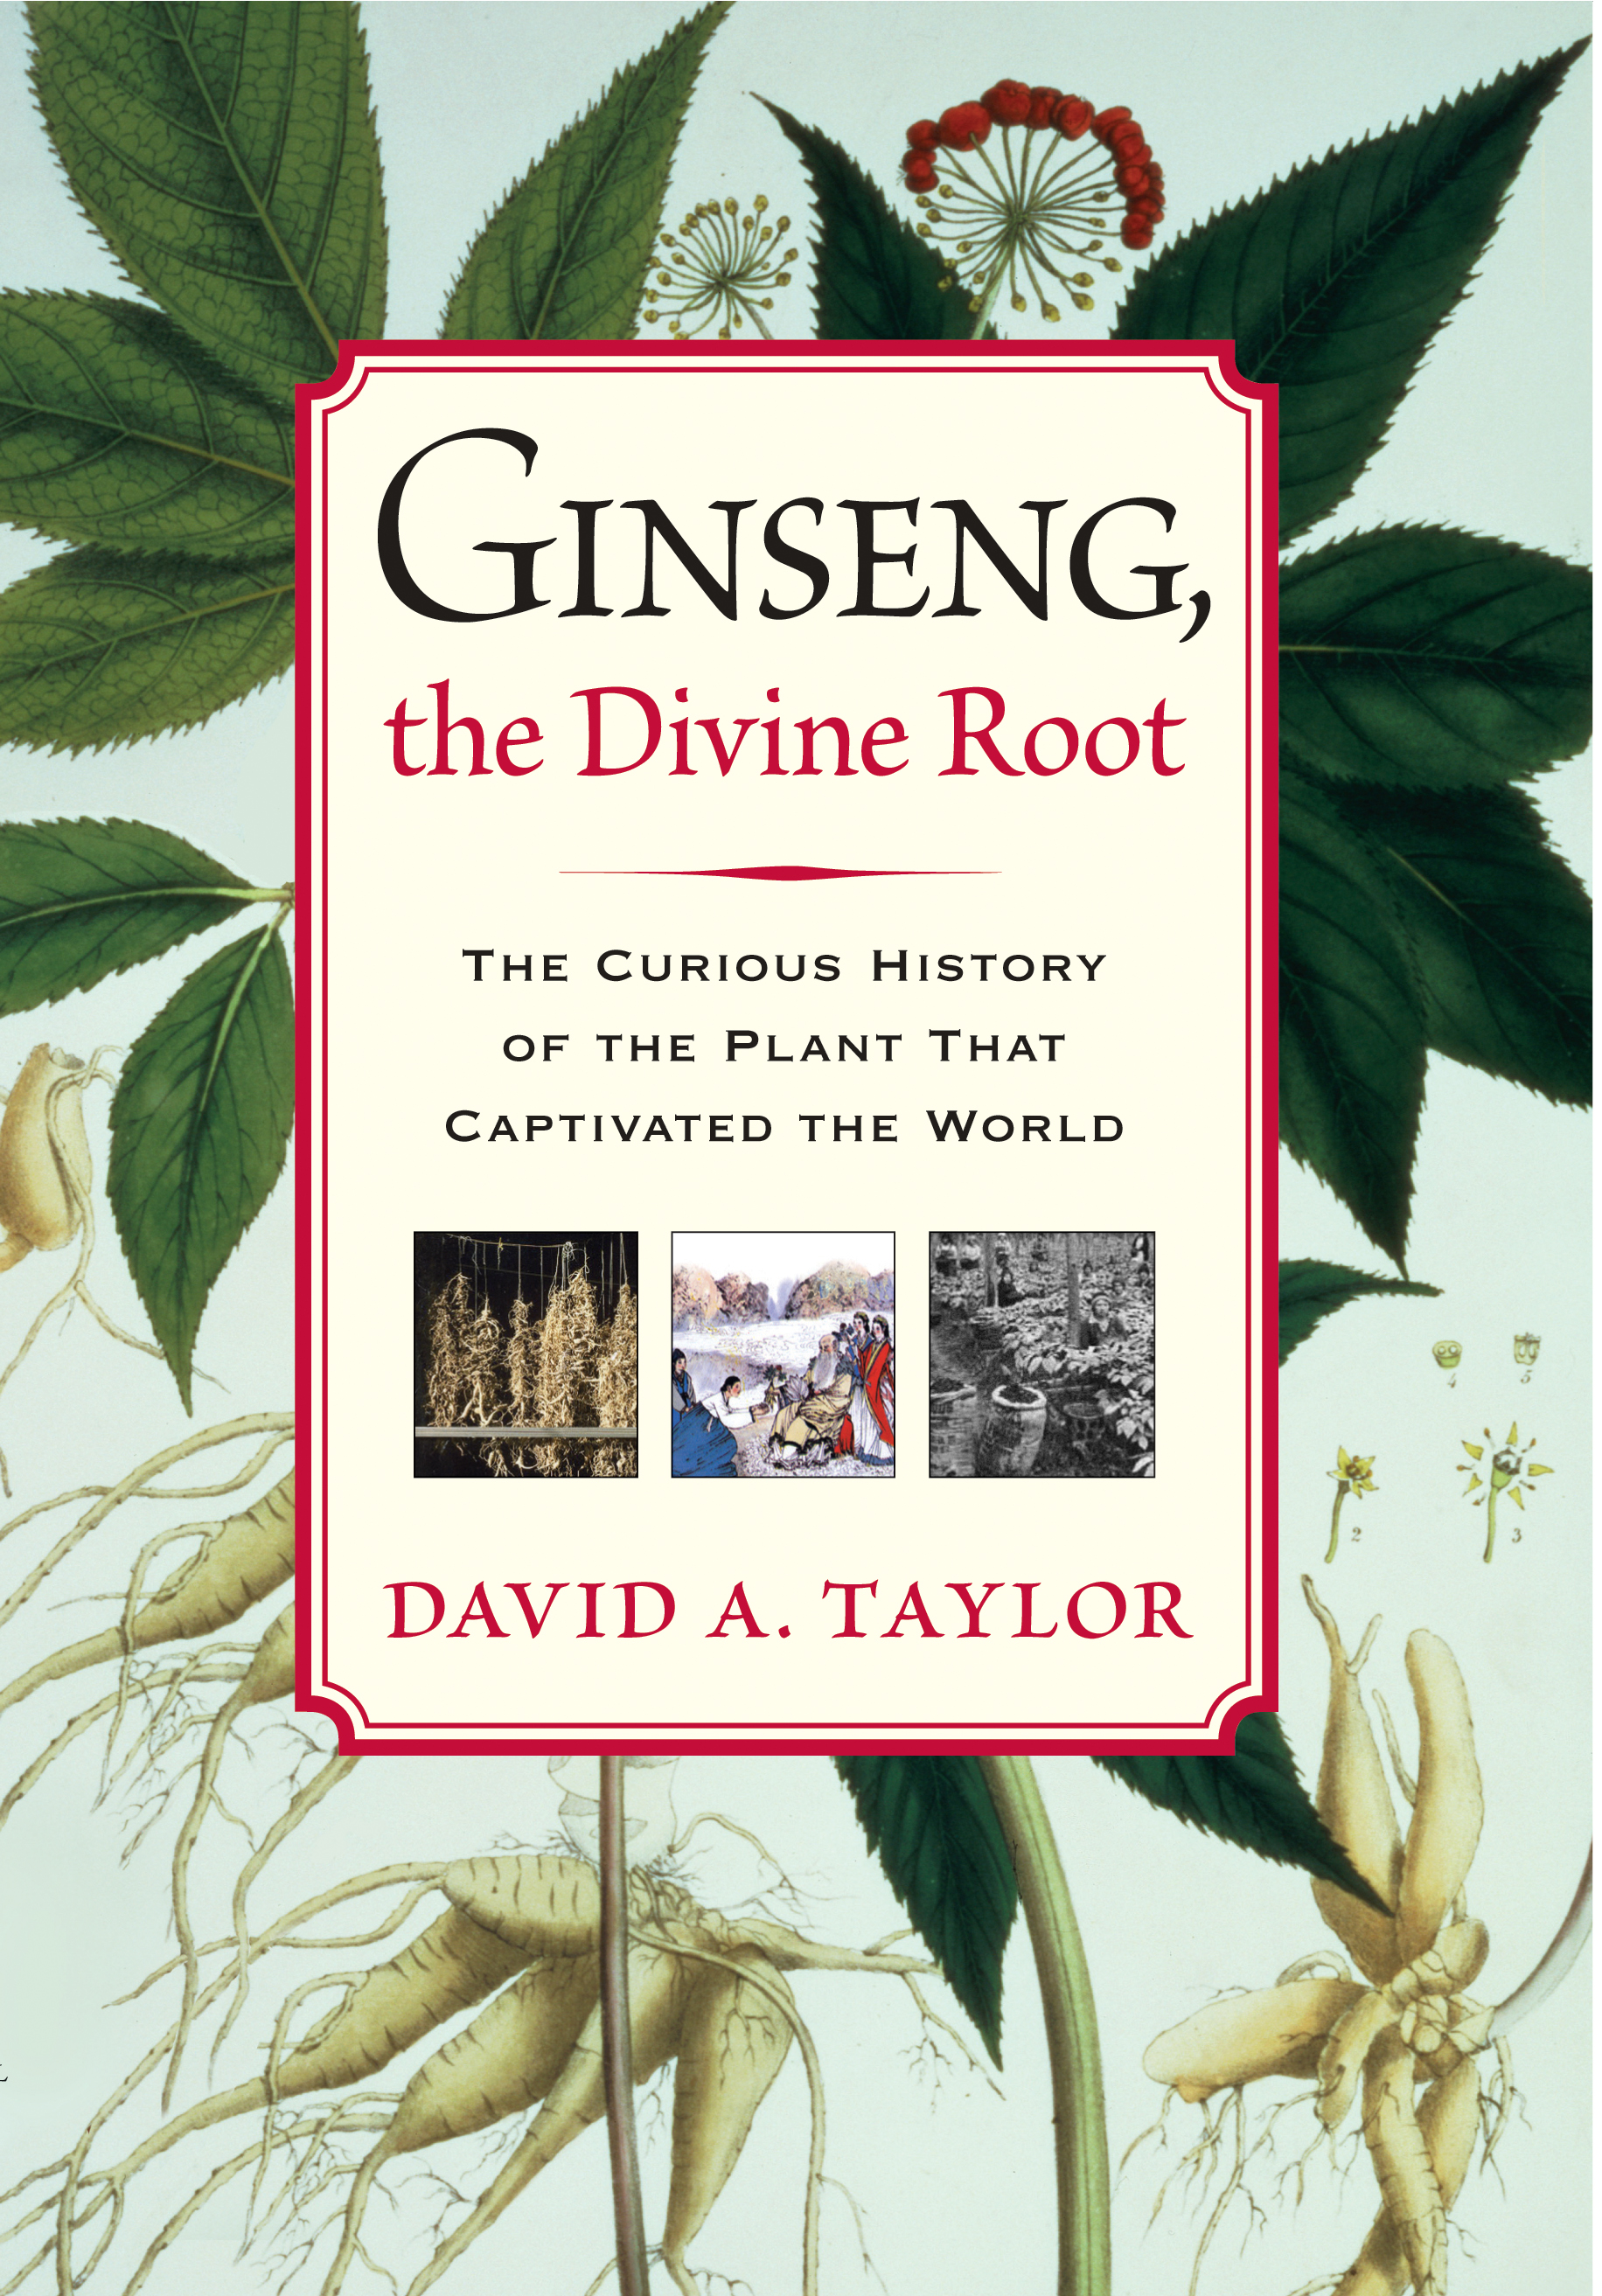 Ginseng the Divine Root by David A. Taylor